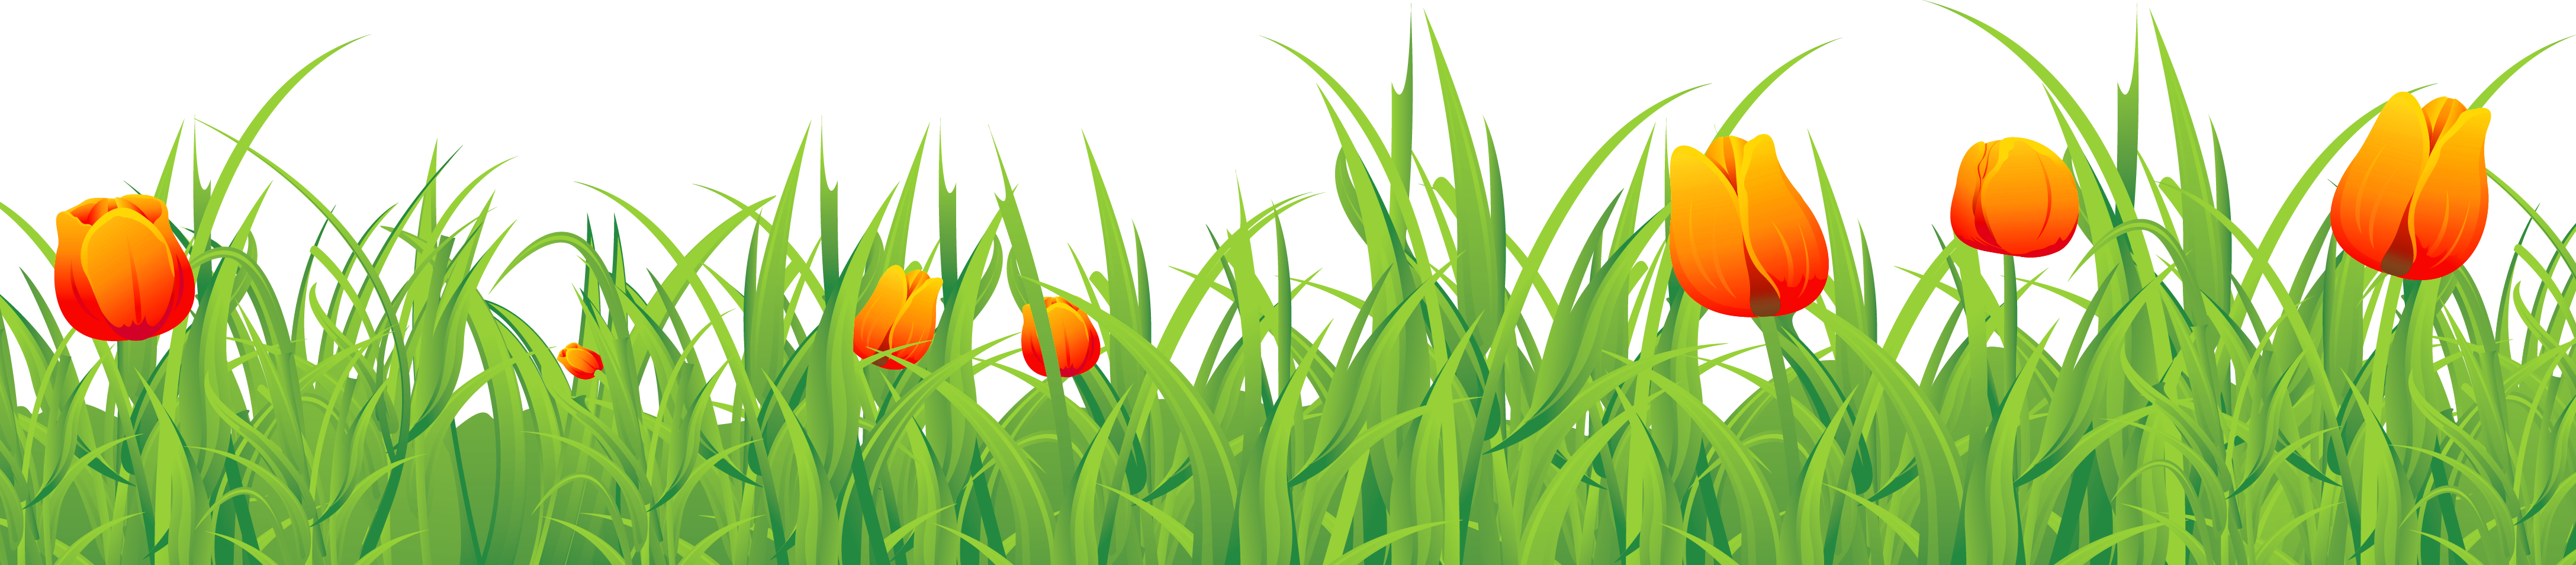 Tulip transparent grass. Time festival ground with